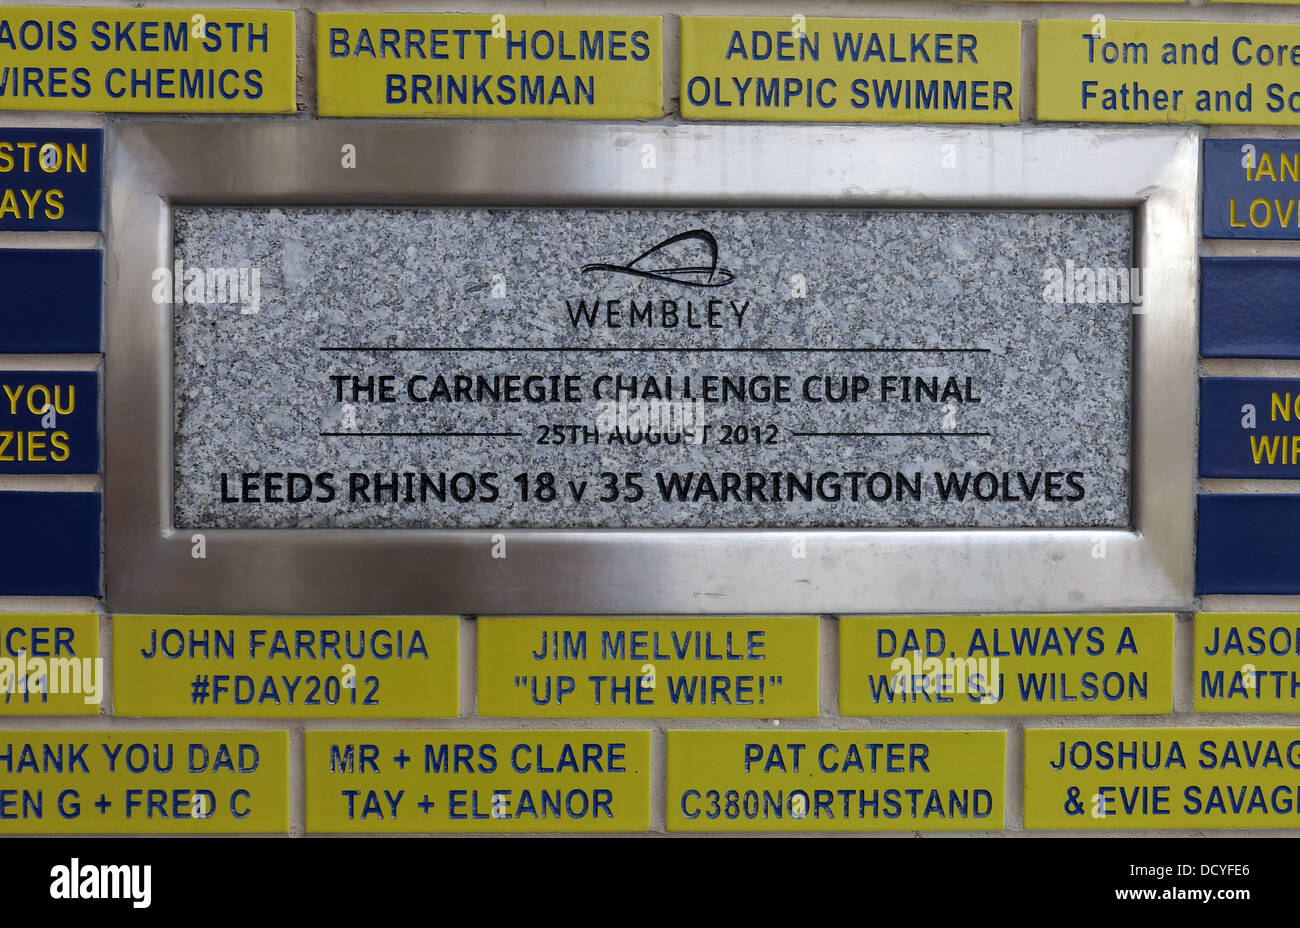 Halliwell,Jones,stadium,Mike,Gregory,Way,/,Winwick,Rd,Warrington,WA2,7NE,Final,plaque,25th,august,2012,leeds,rhinos,wolves,with,supporter,supporters,bricks,with,names,Gotonysmith,Warringtonians,Buy Pictures of,Buy Images Of